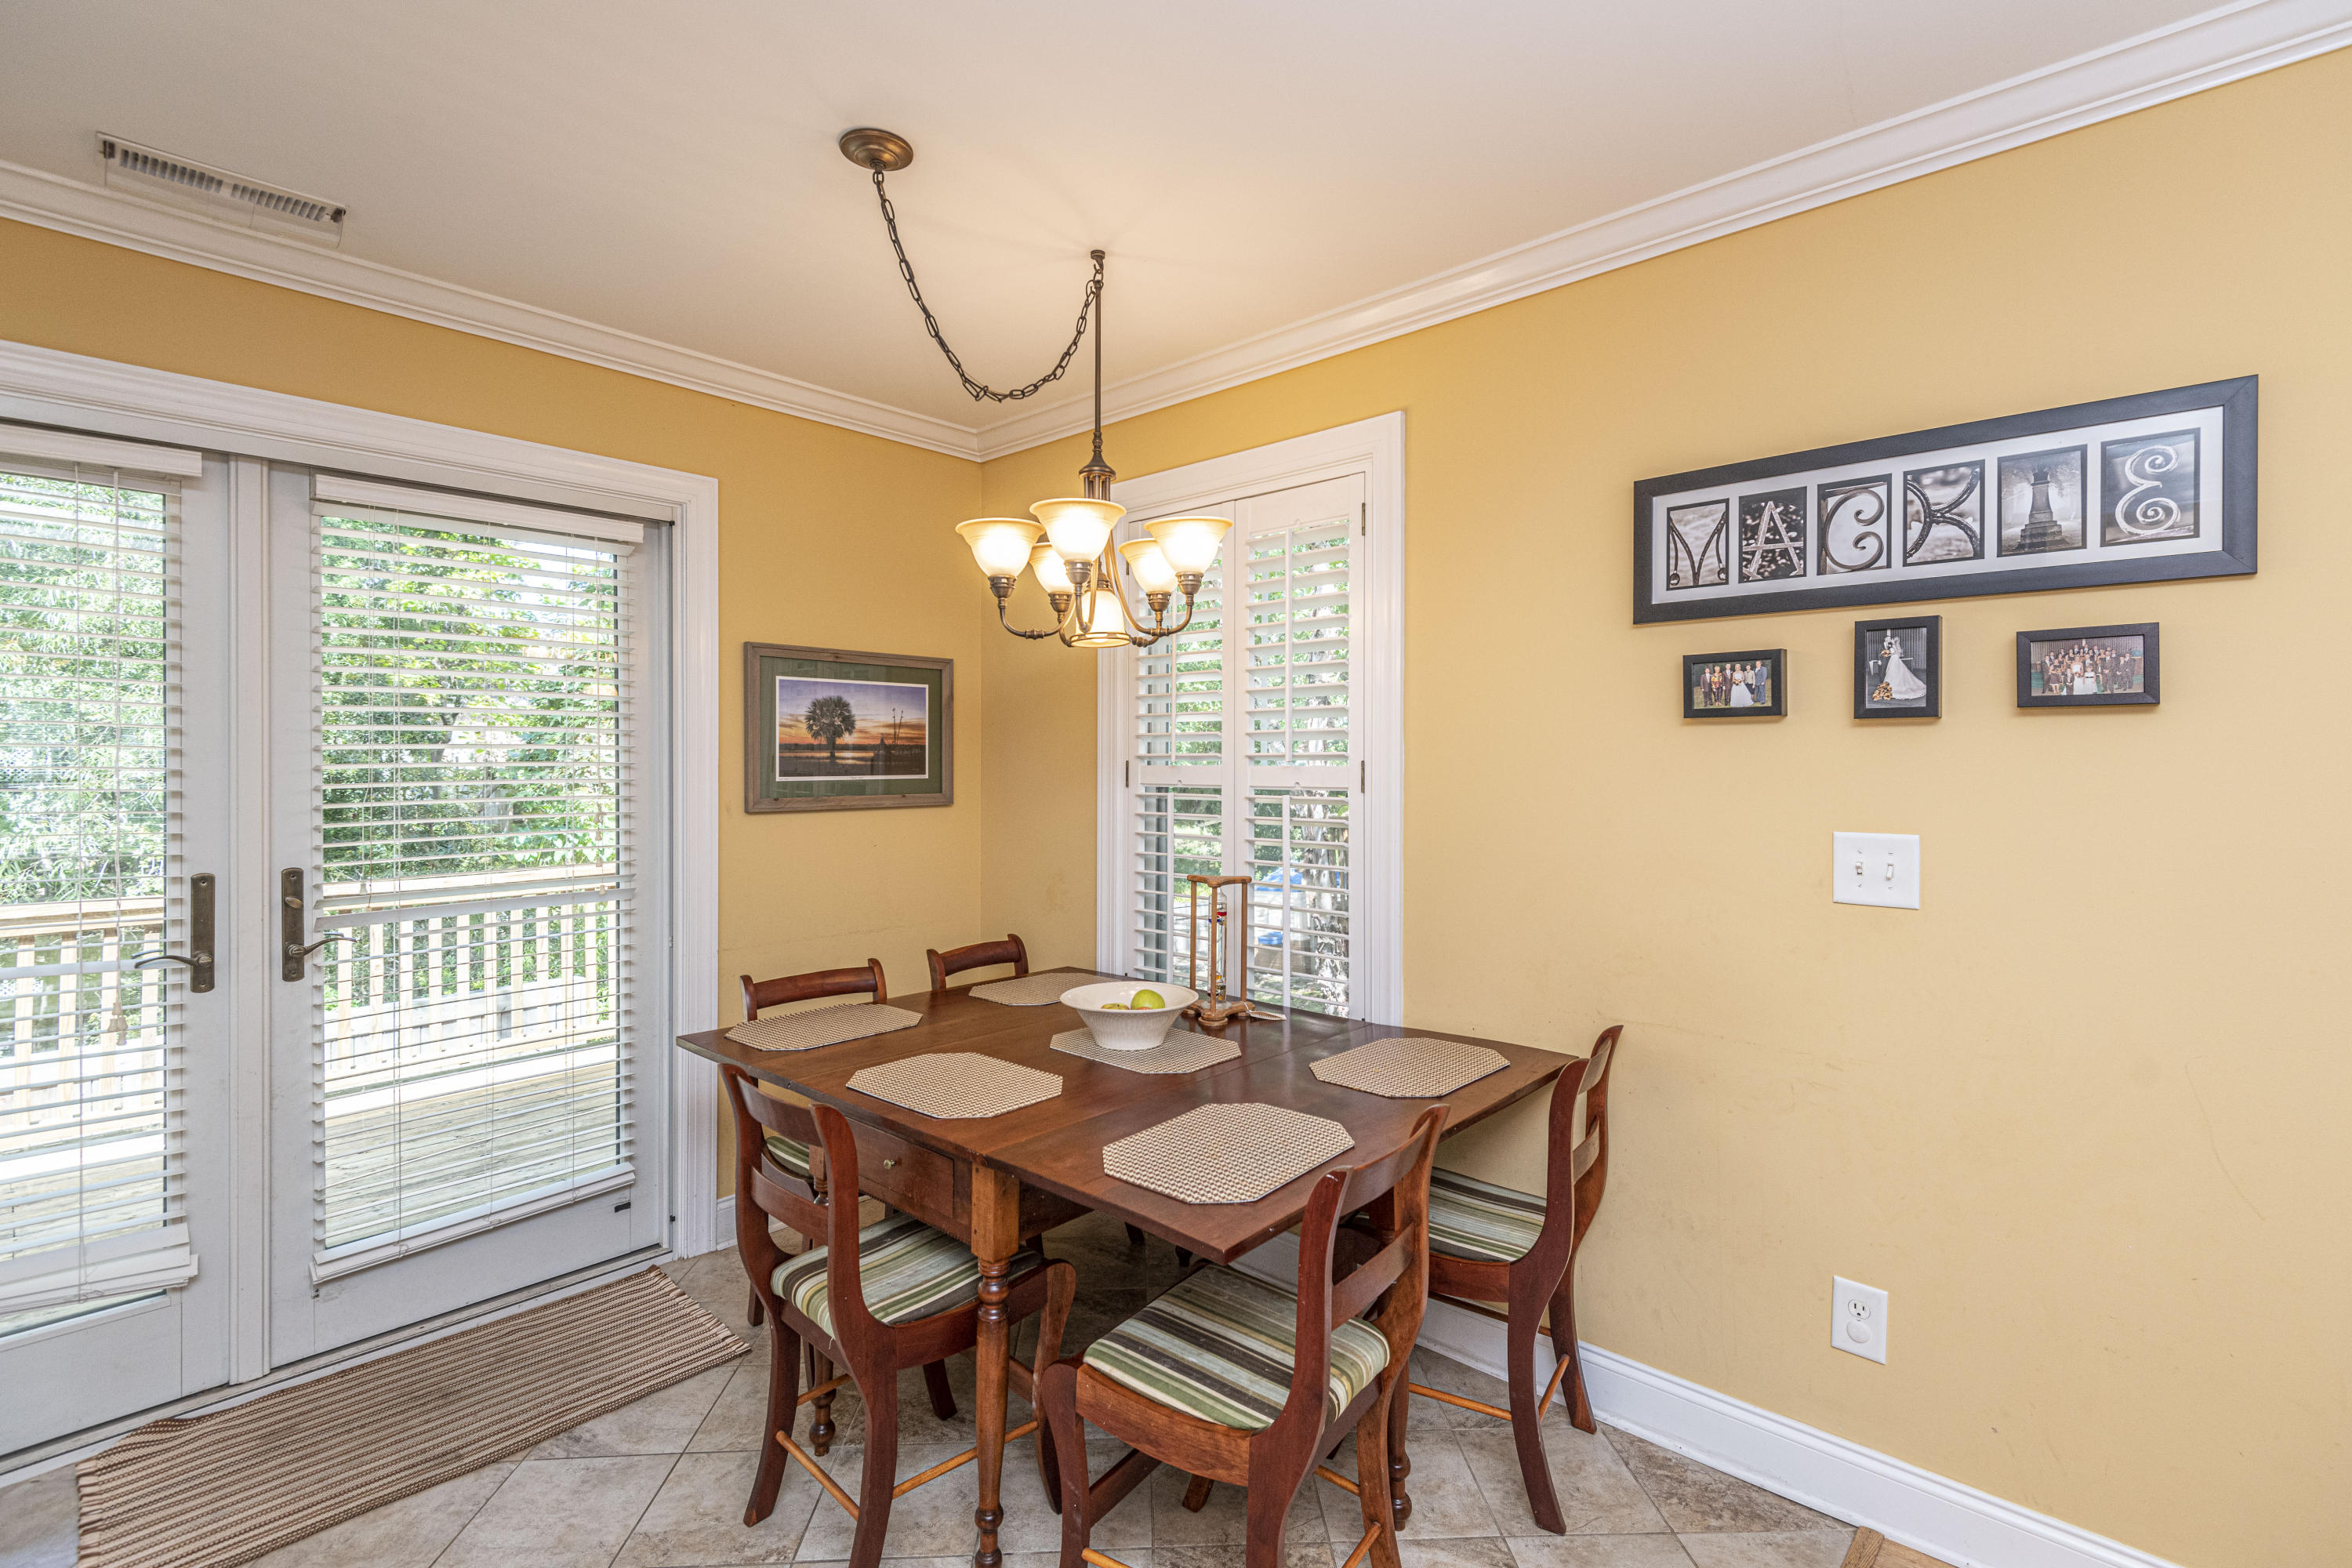 The Reserve at Wando East Homes For Sale - 1681 Lauda, Mount Pleasant, SC - 24